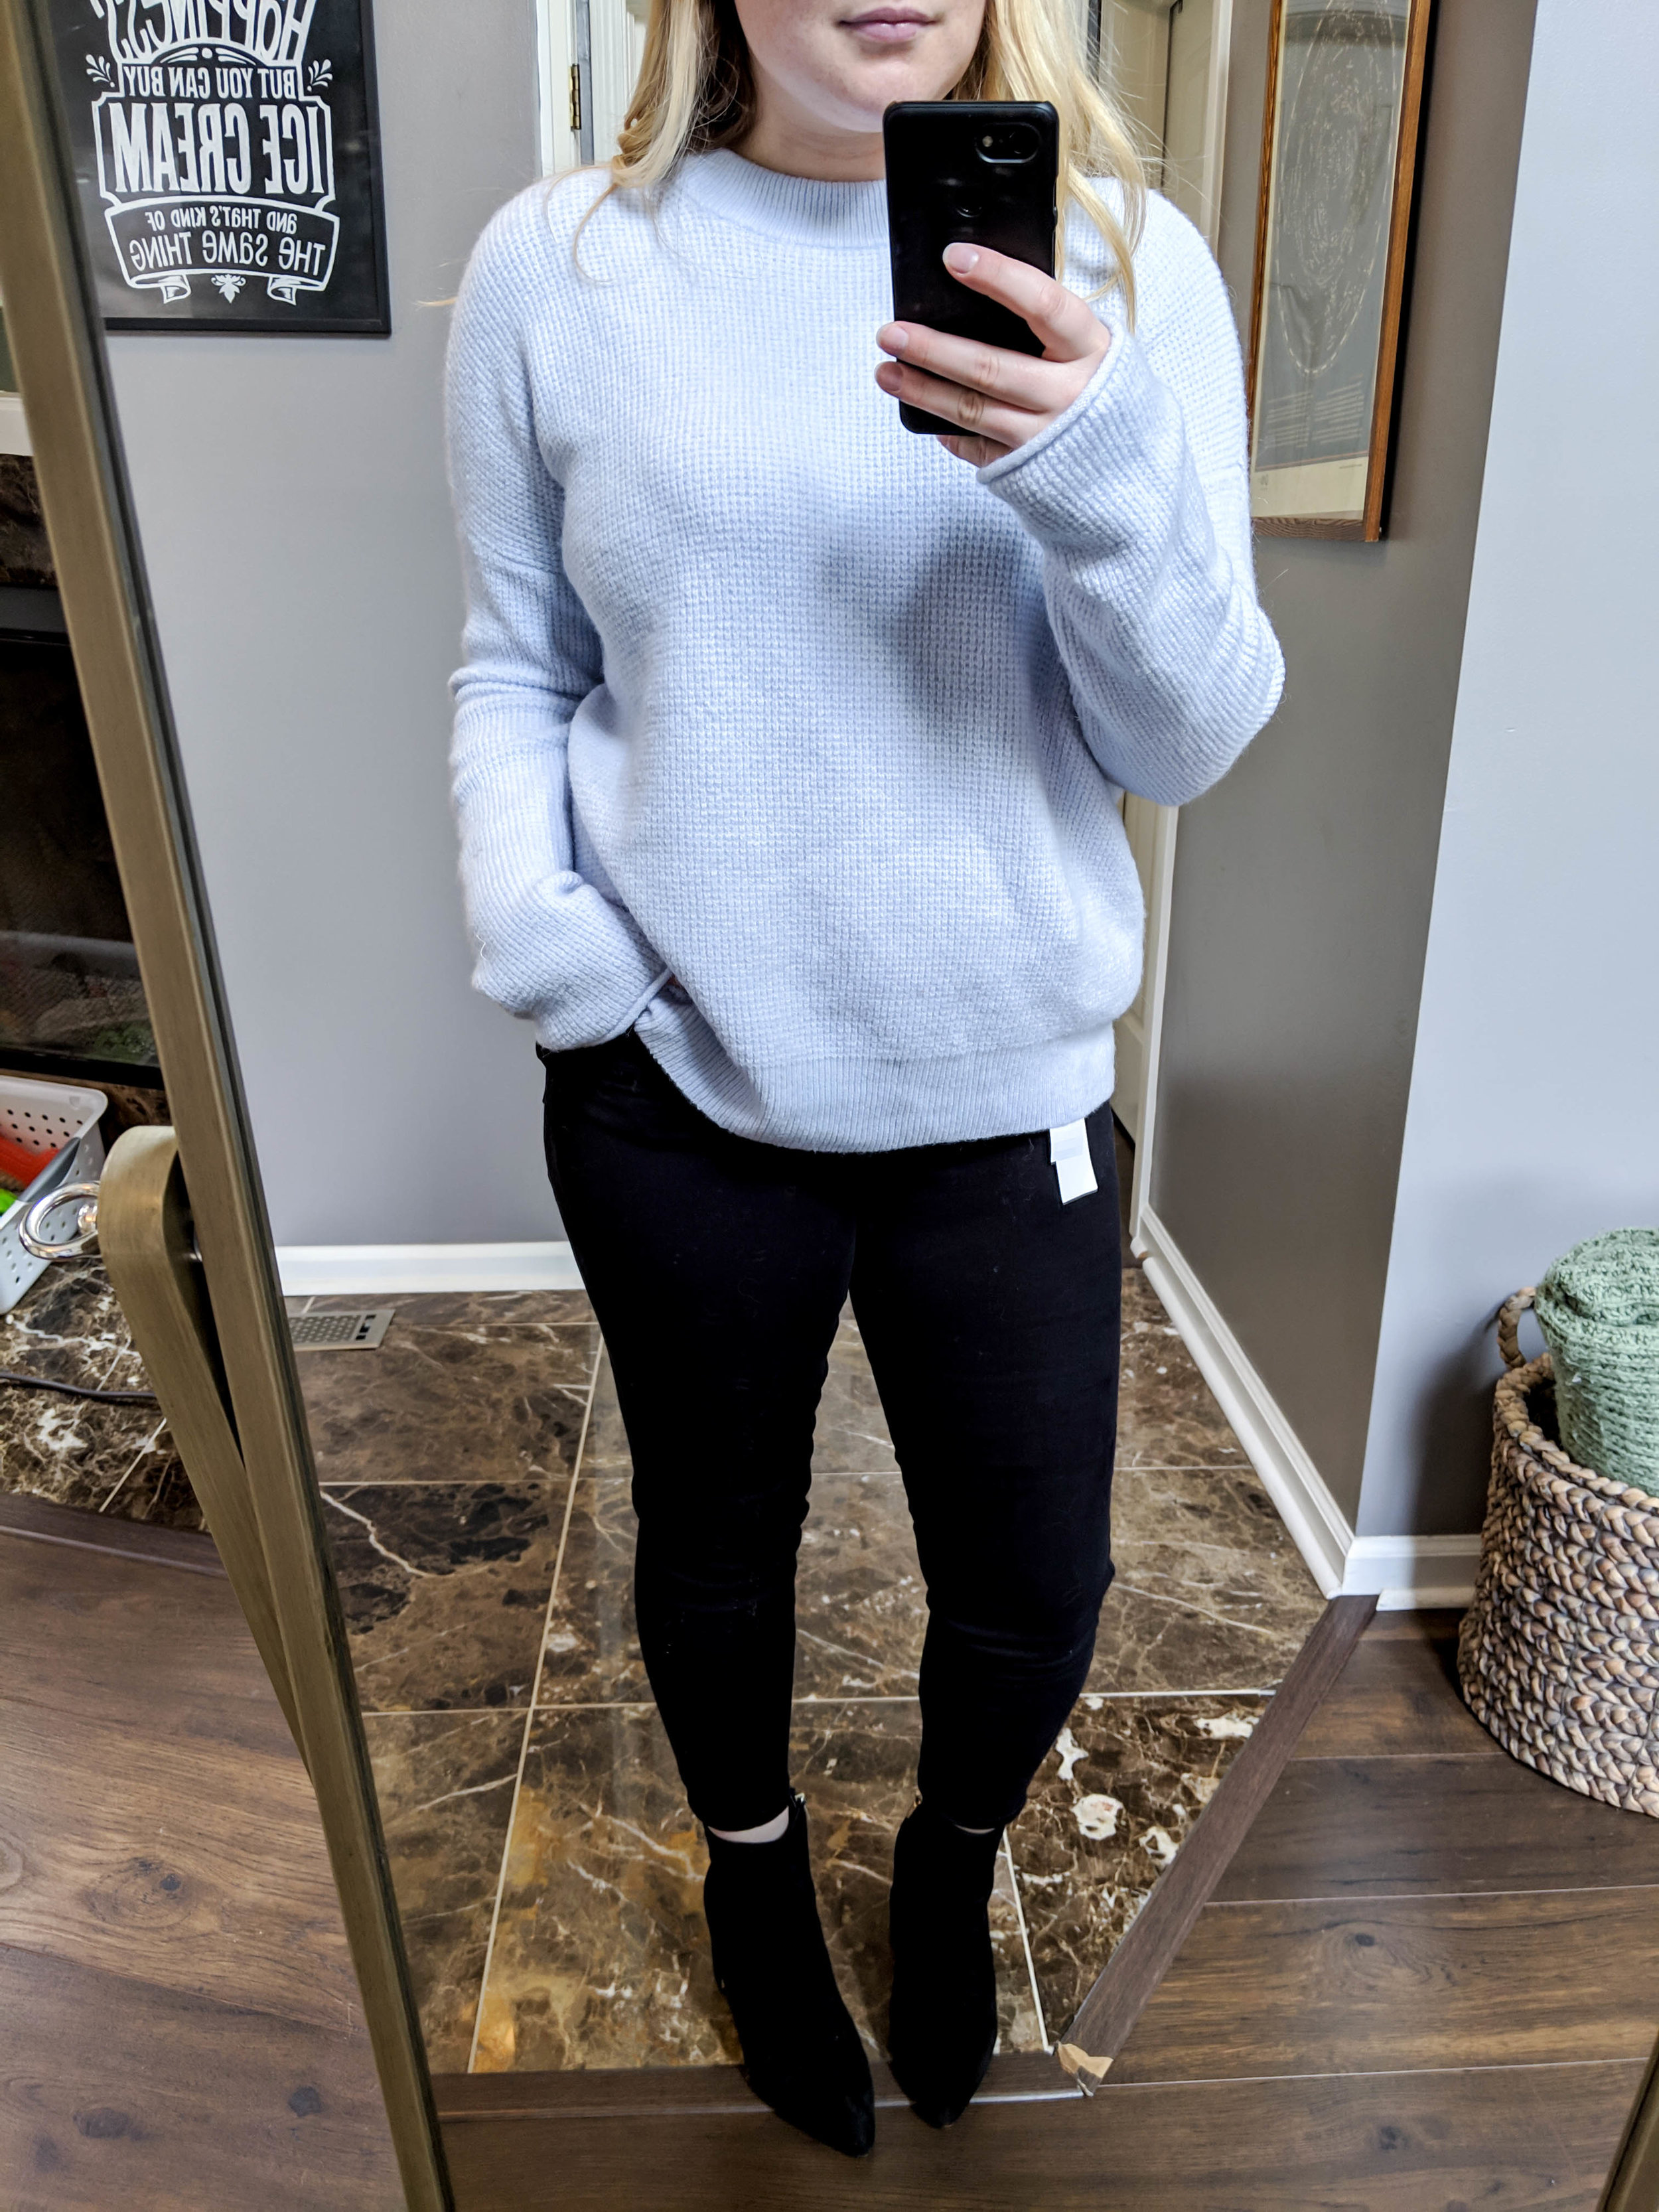 Maggie a la Mode - Home Try-Ons Review Topshop Moto Jamie High Waist Black Jeans, J Crew Point Sur Button Back Sweater in Waffled Supersoft Yarn, Sam Edelman Hilty Bootie